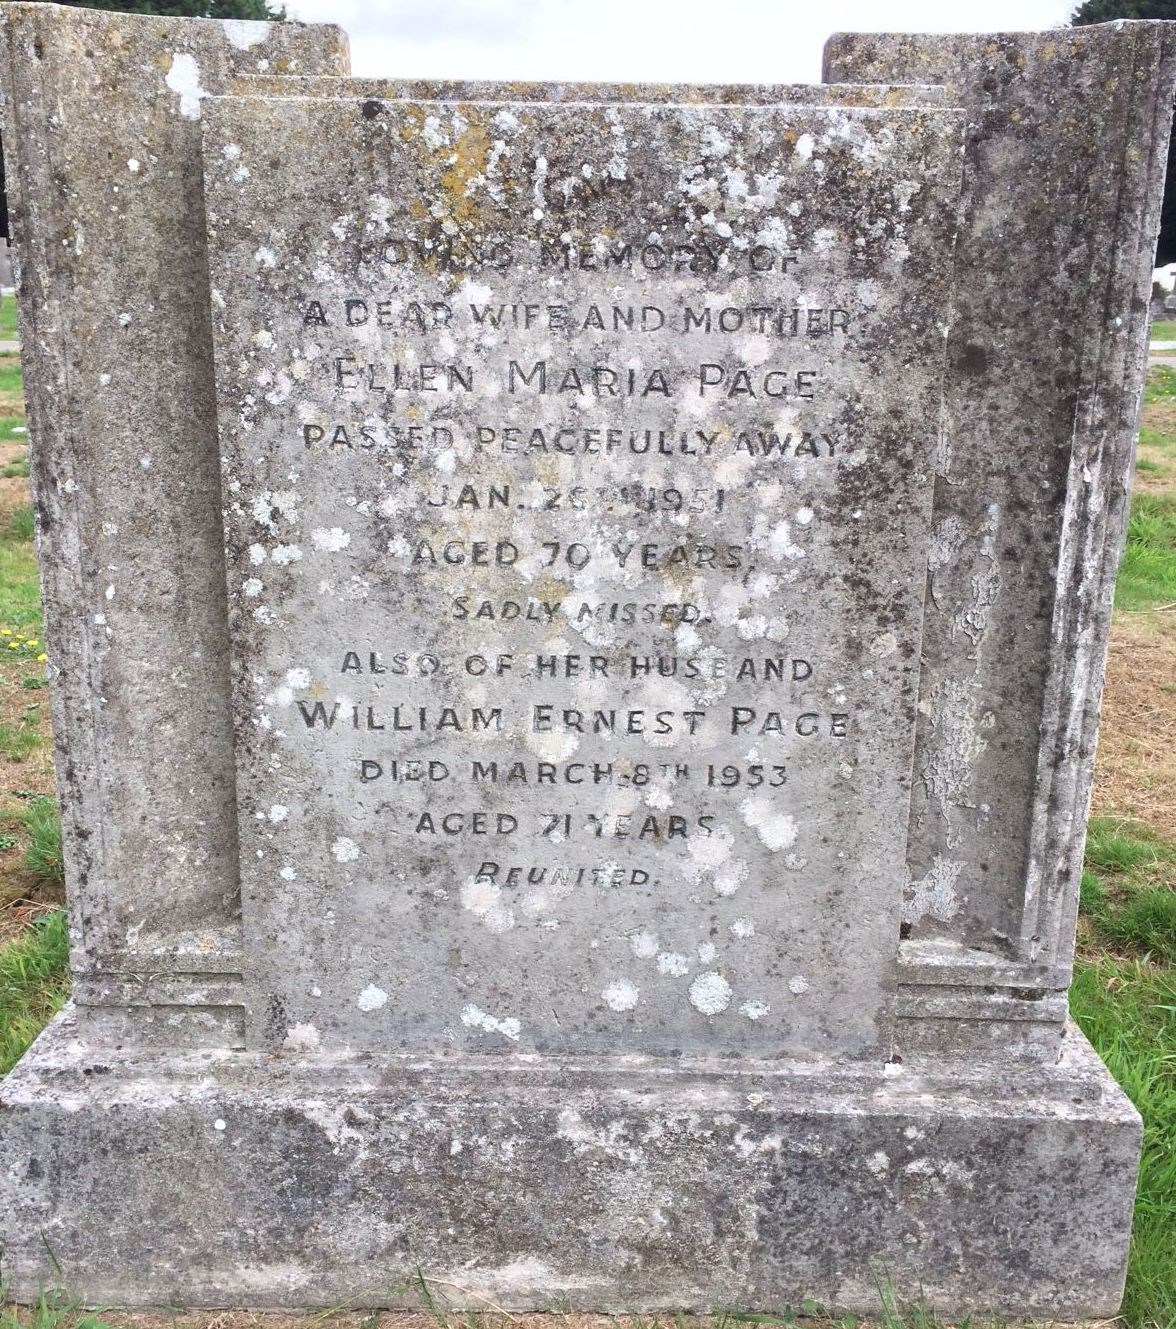 William Ernest Page - Ellen Wellard - Gravestone